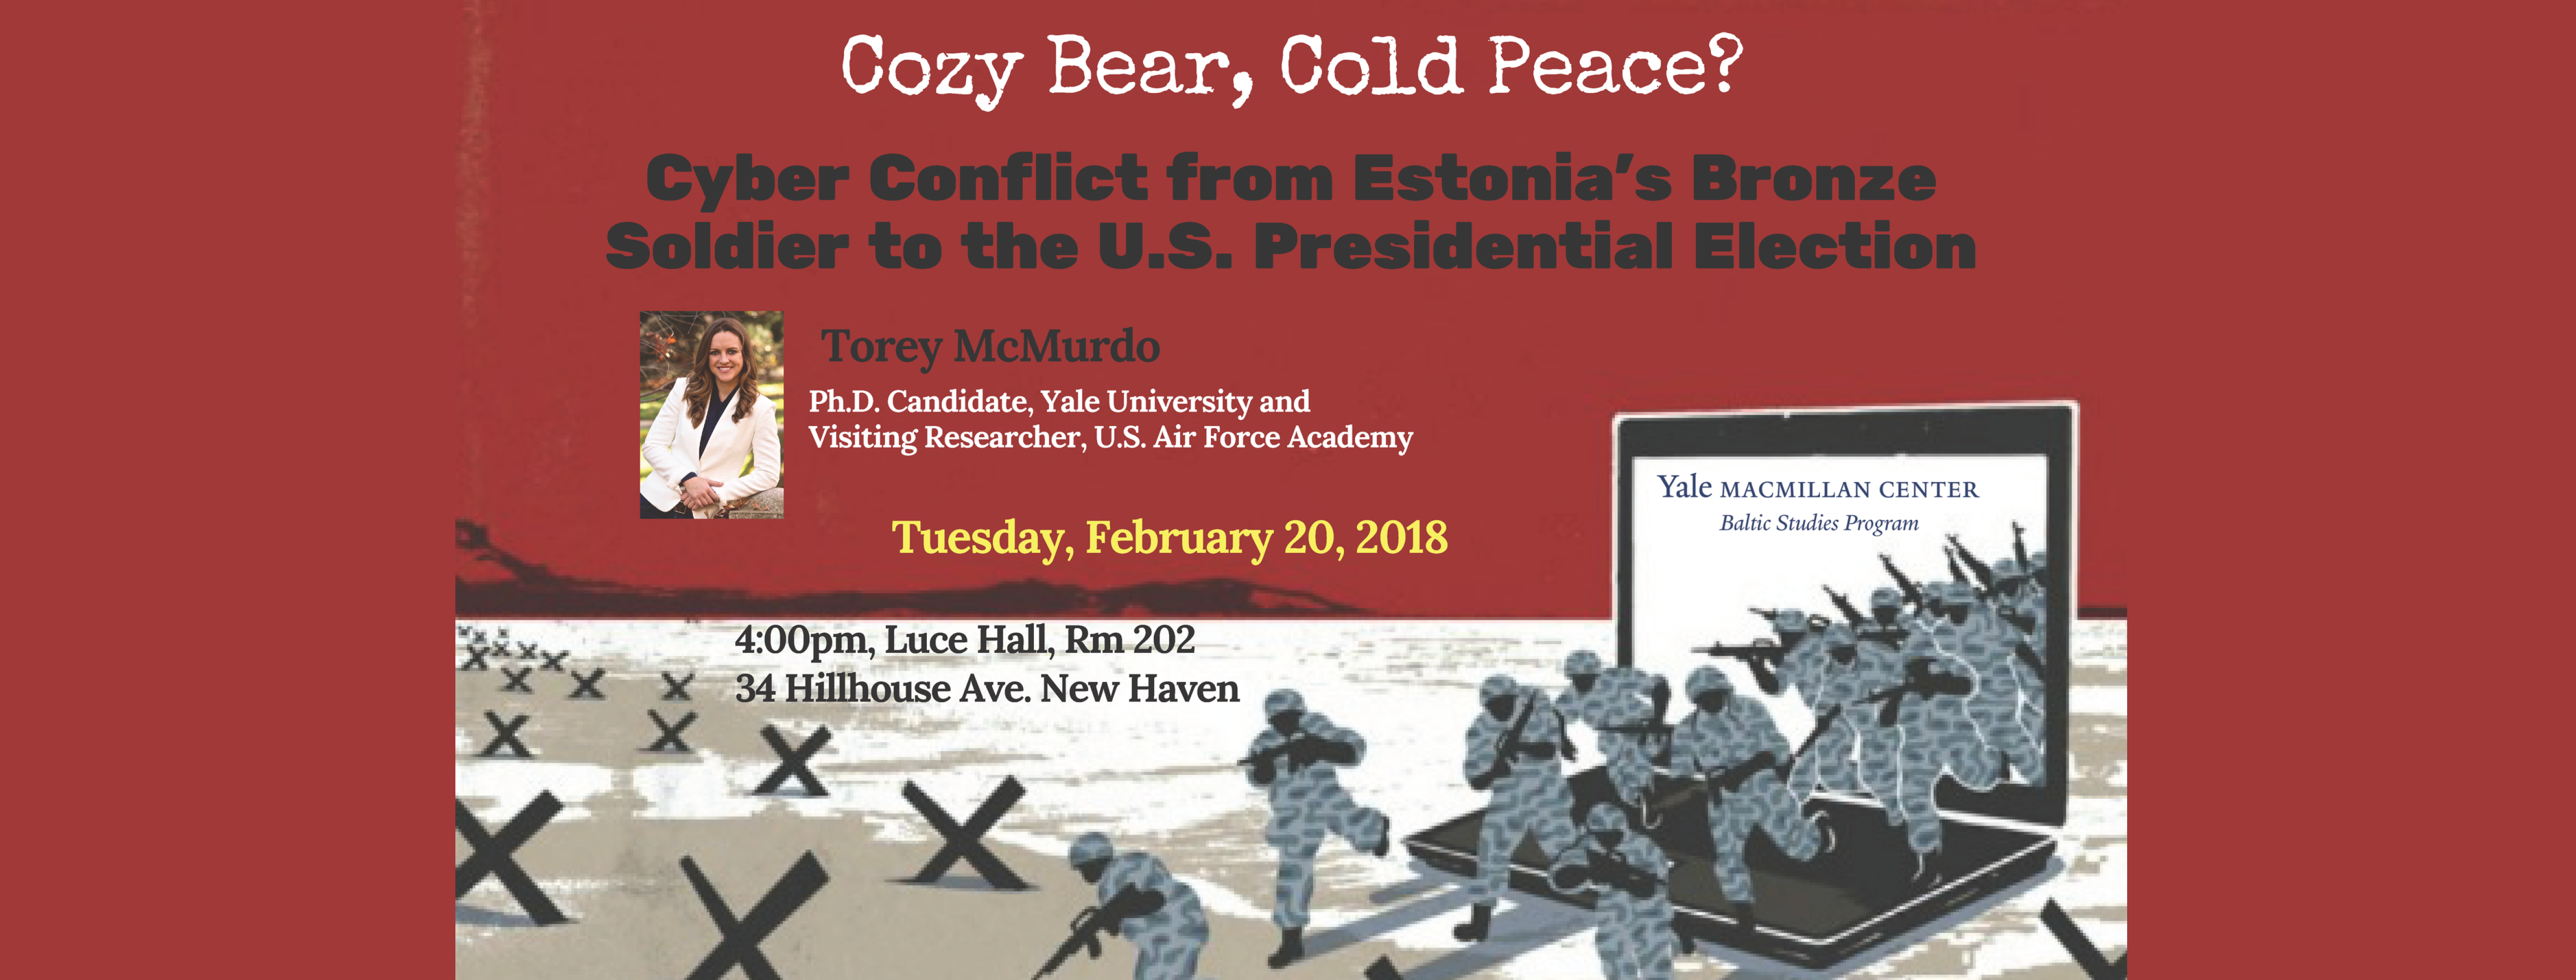 Link to event details for Cozy Bear, Cold Peace